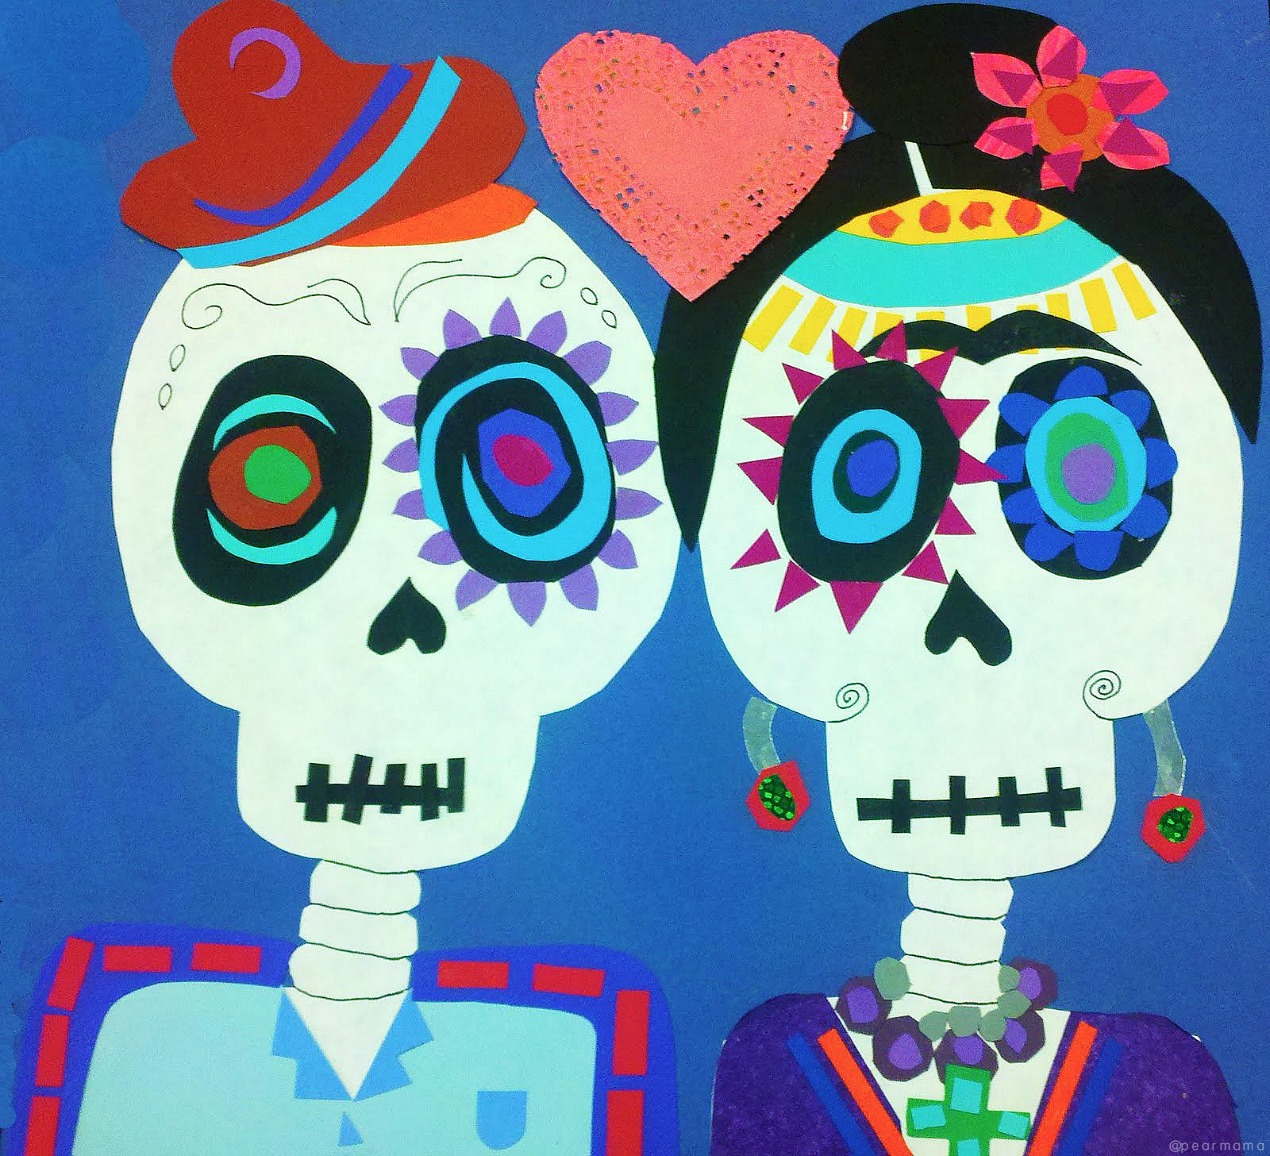 Create your own Frida Kahlo and Diego Rivera paper collage for Dia de los Muertos using colored scrapbook paper, scissors, glue and markers.